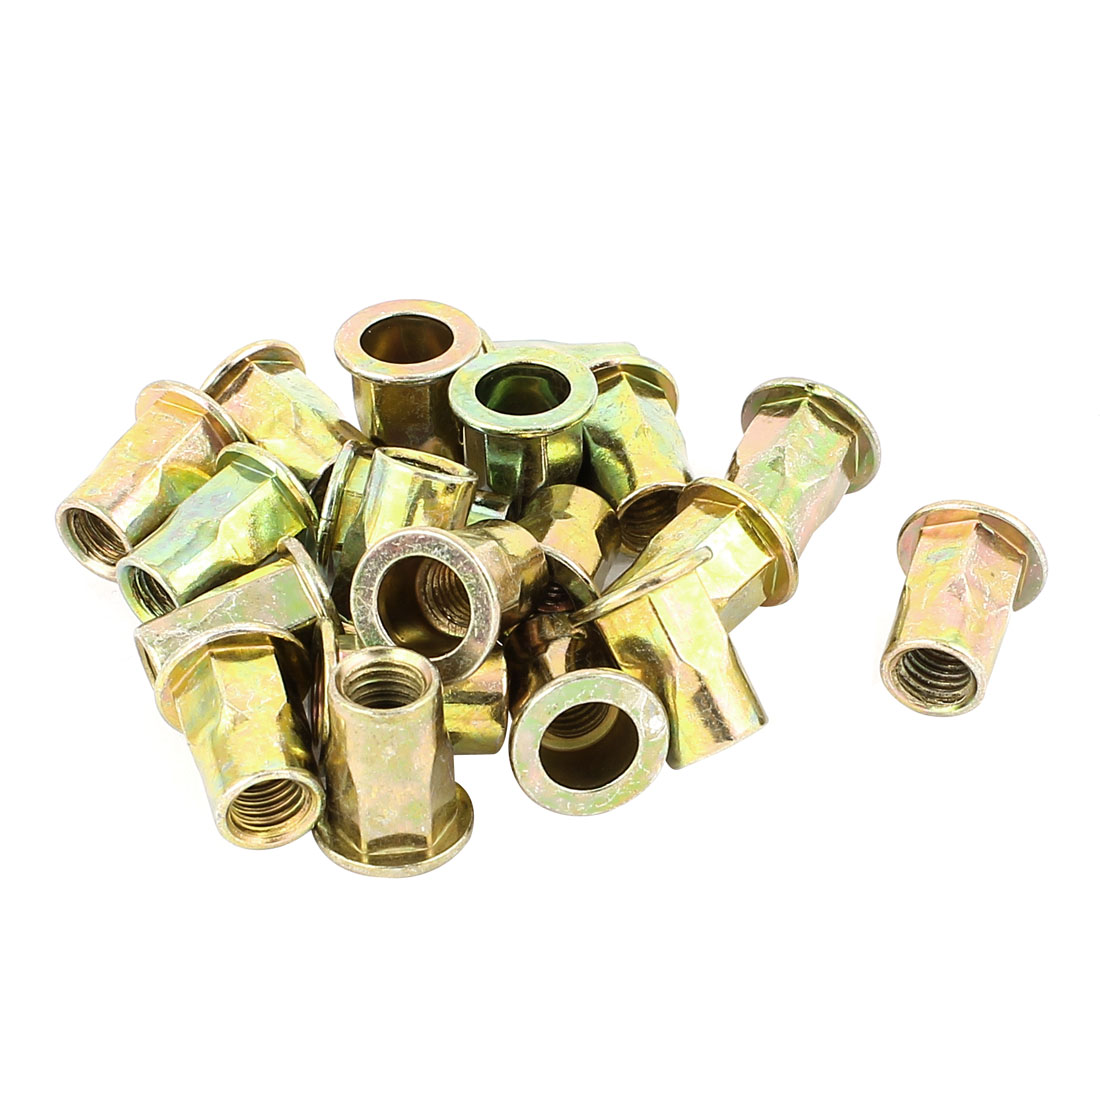 8mmx18mm Flat Head Metal Rivet Nut Insert Nutsert Gold Tone 20Pcs